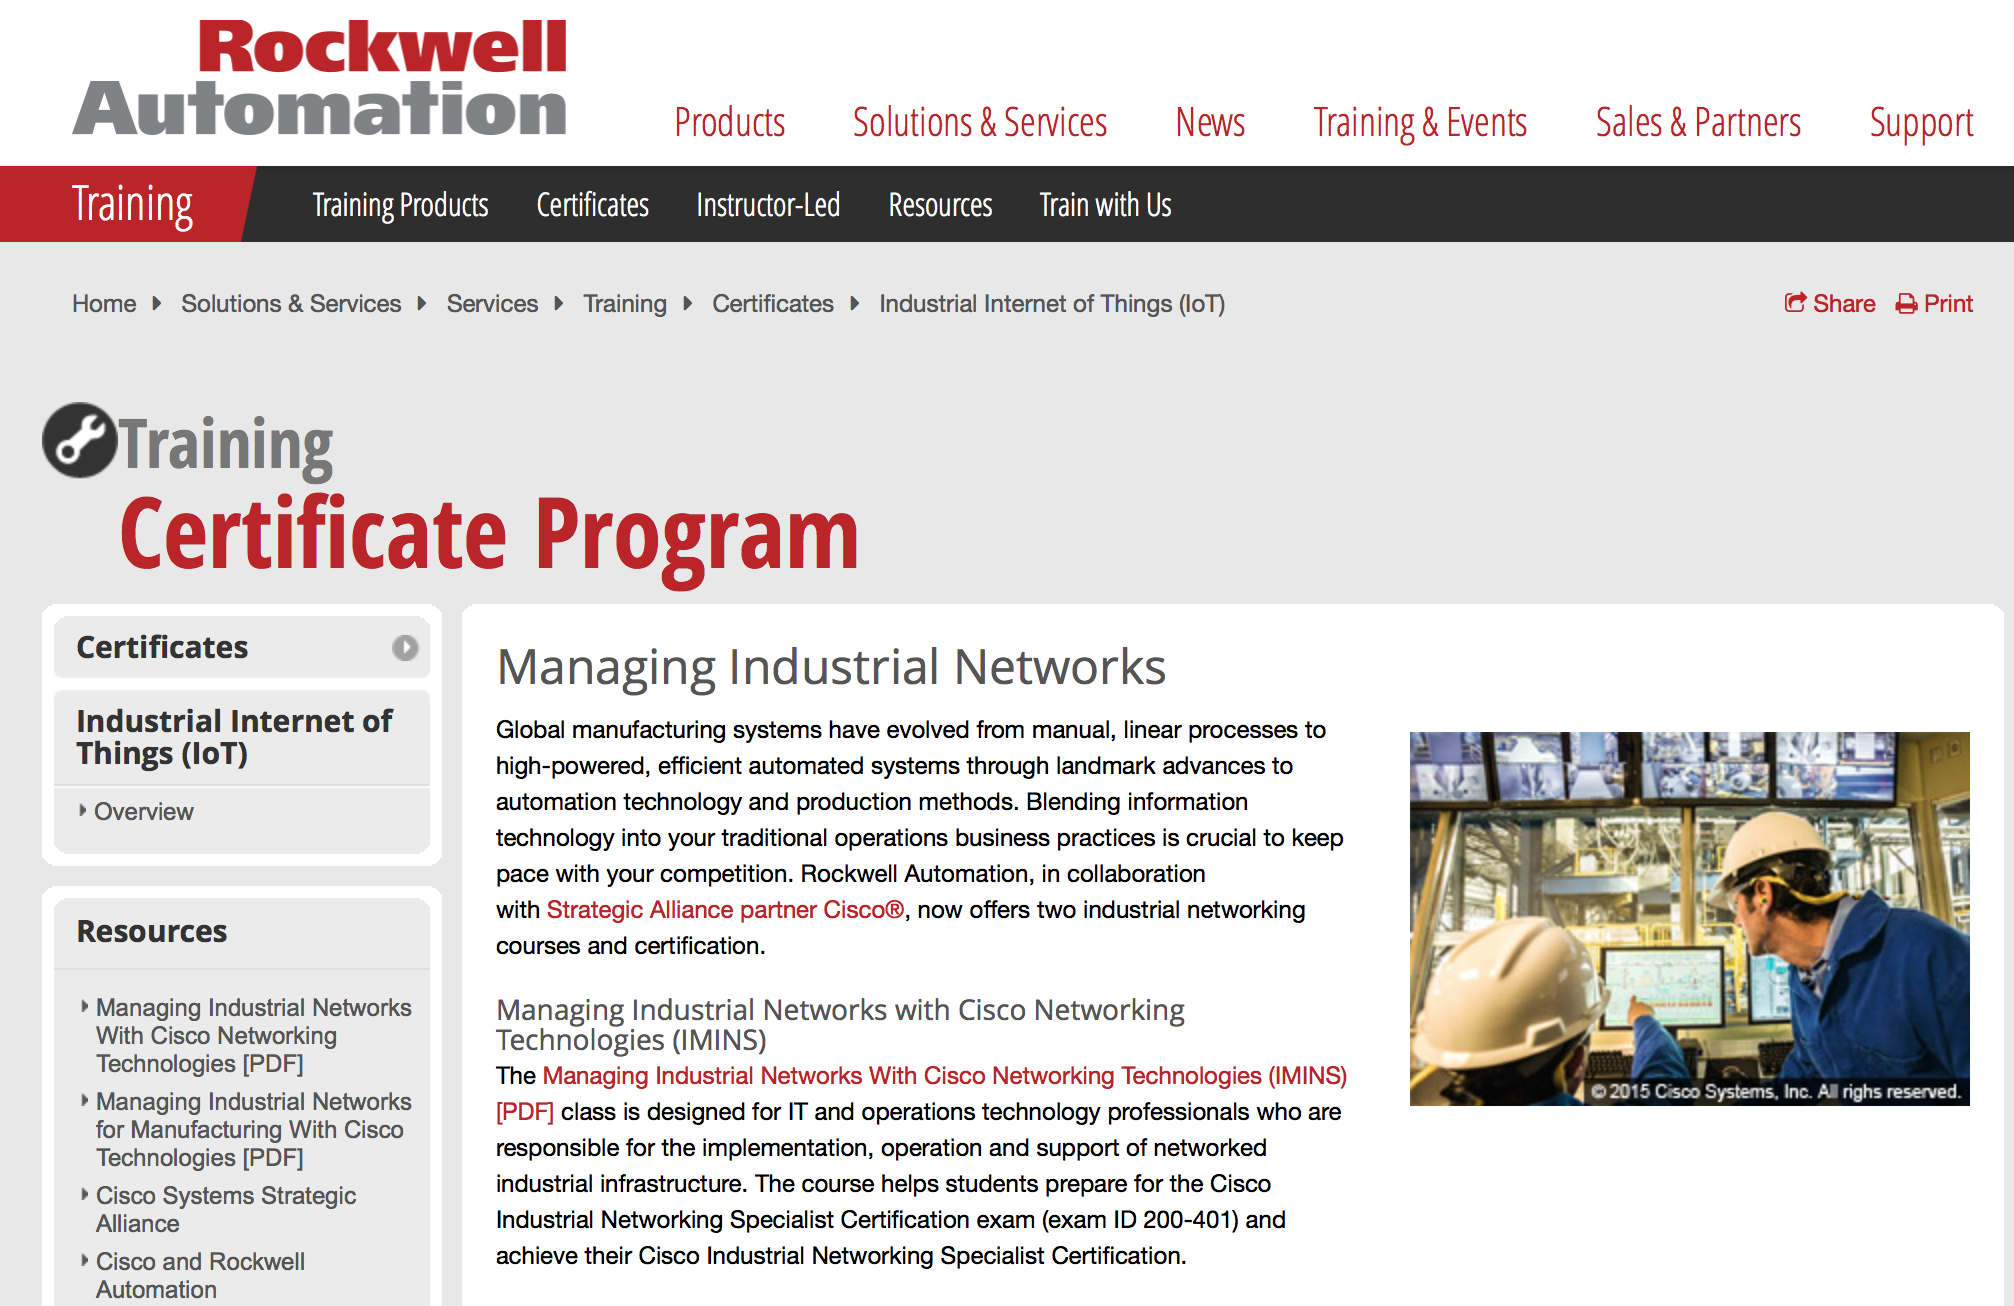 Managing Industrial Networks With Cisco Networking Technologies